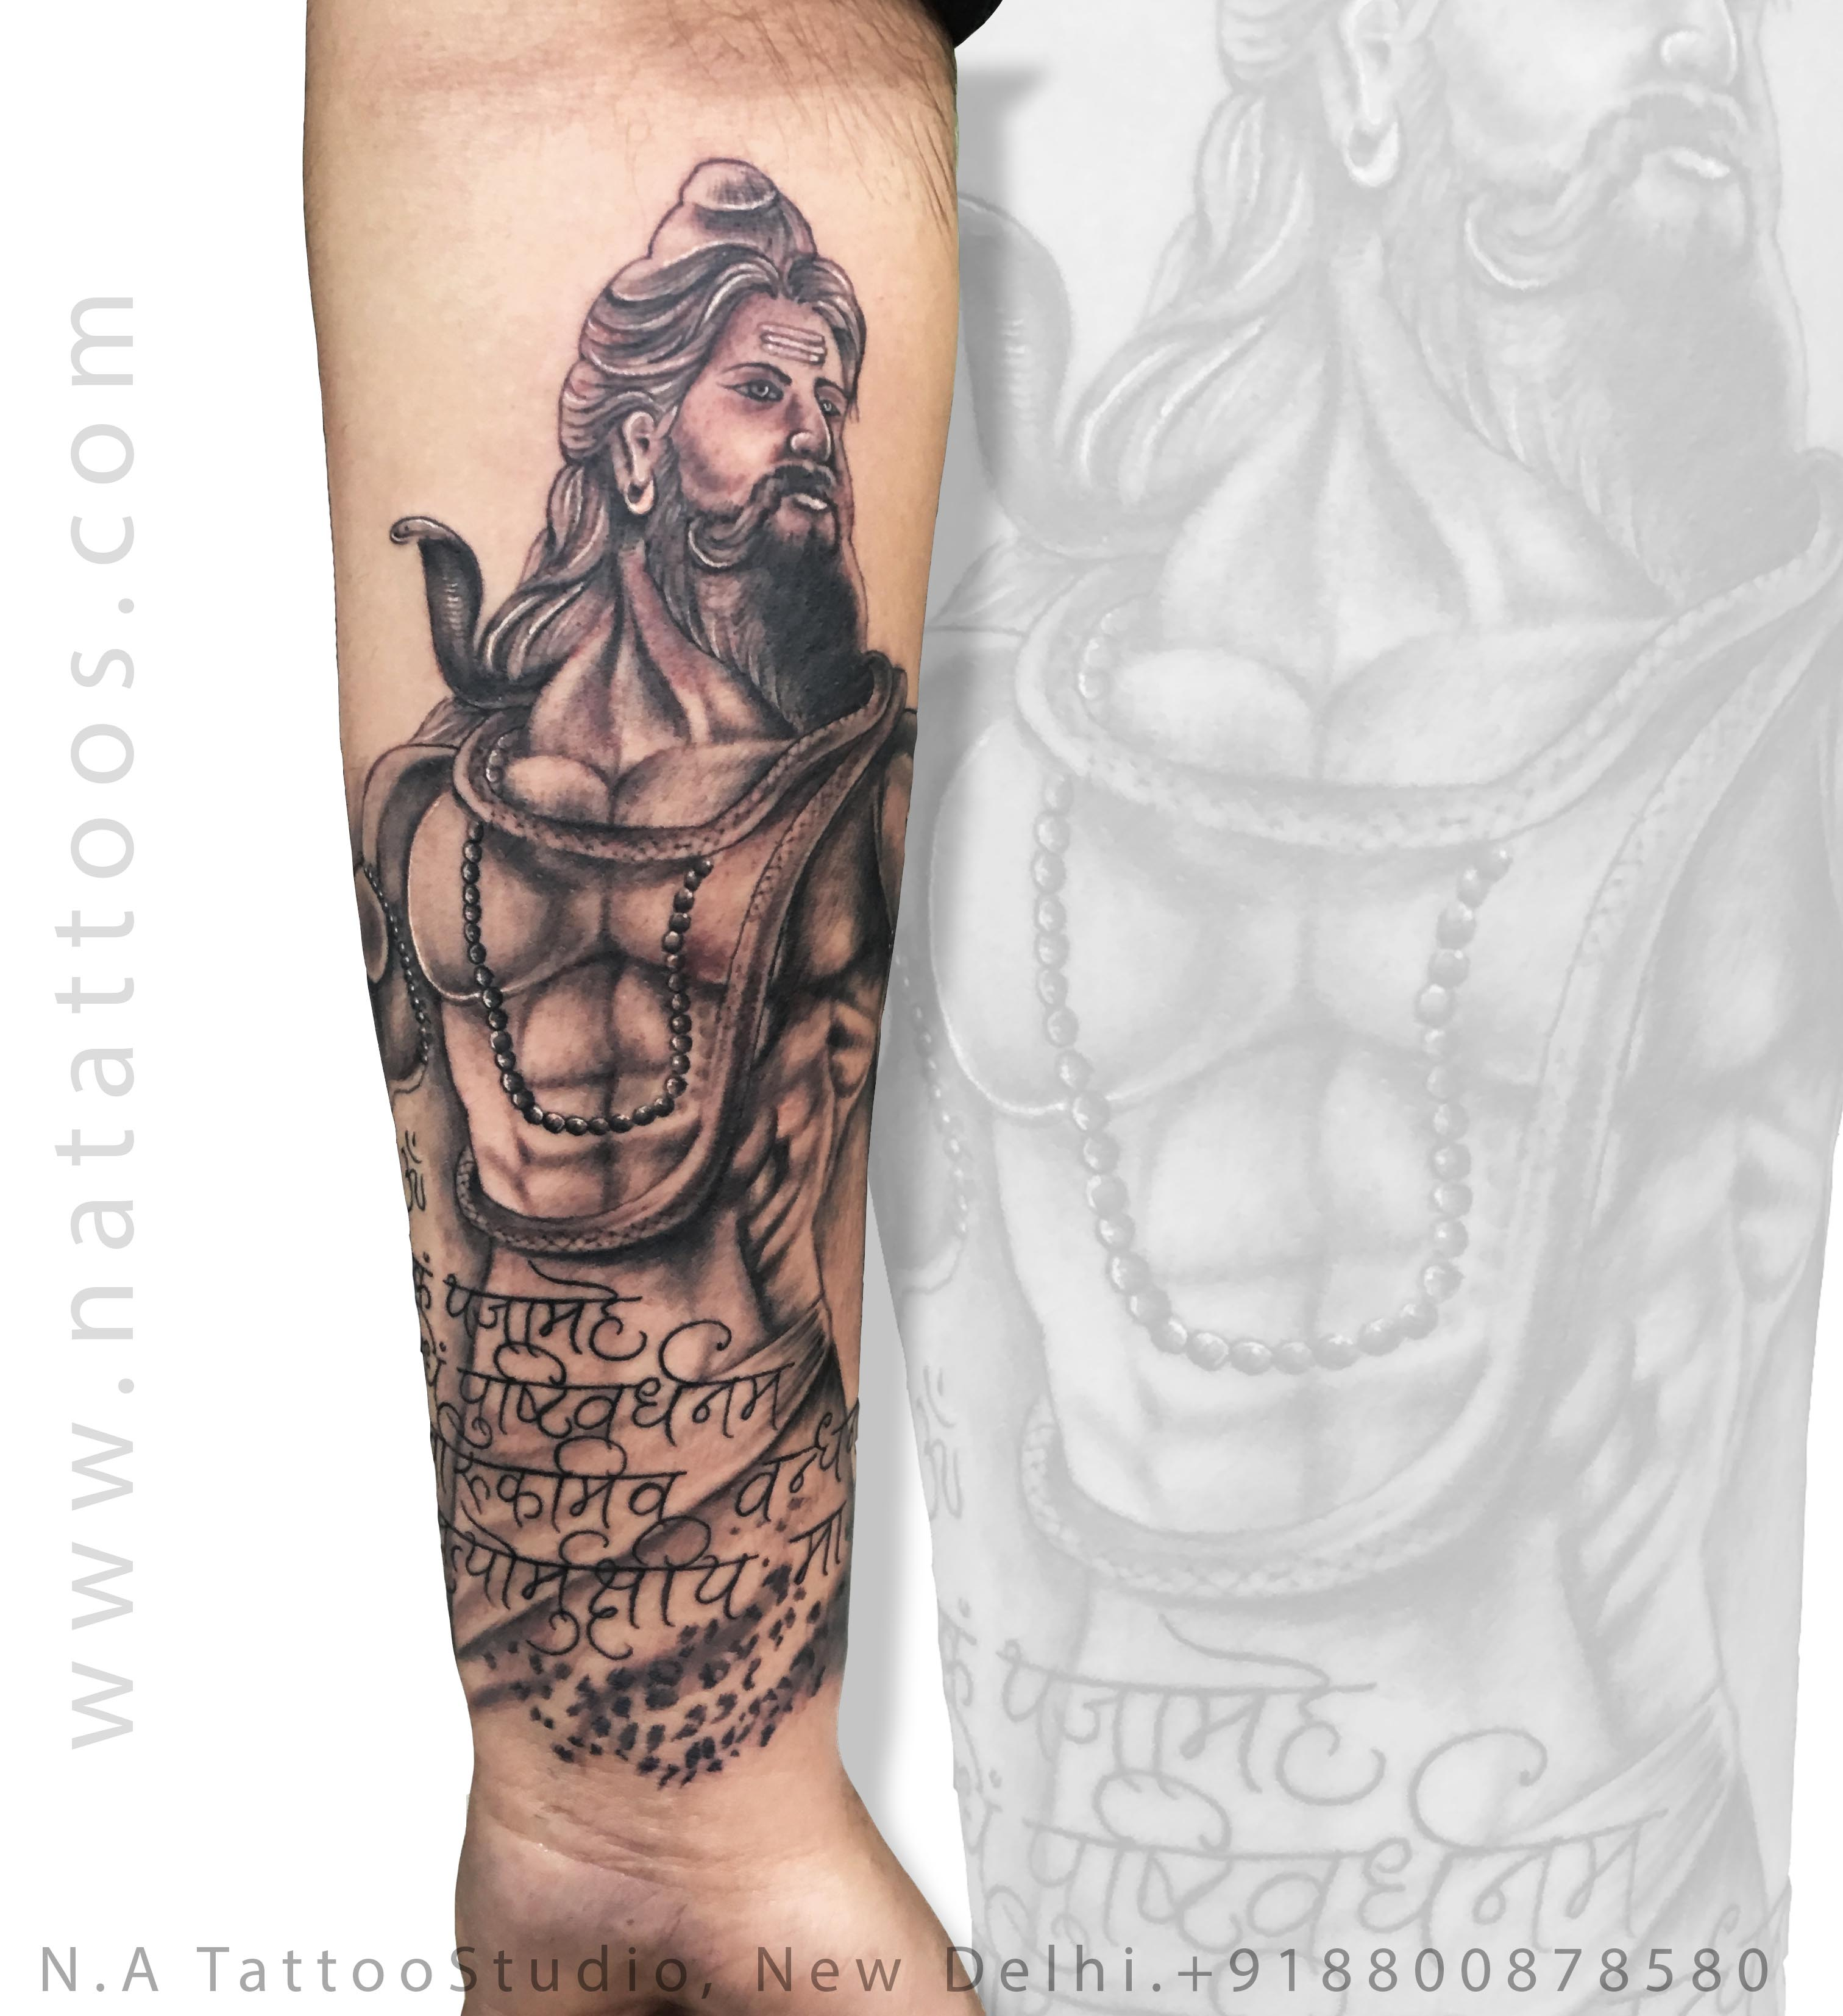 Muscular Shiva with Mantra